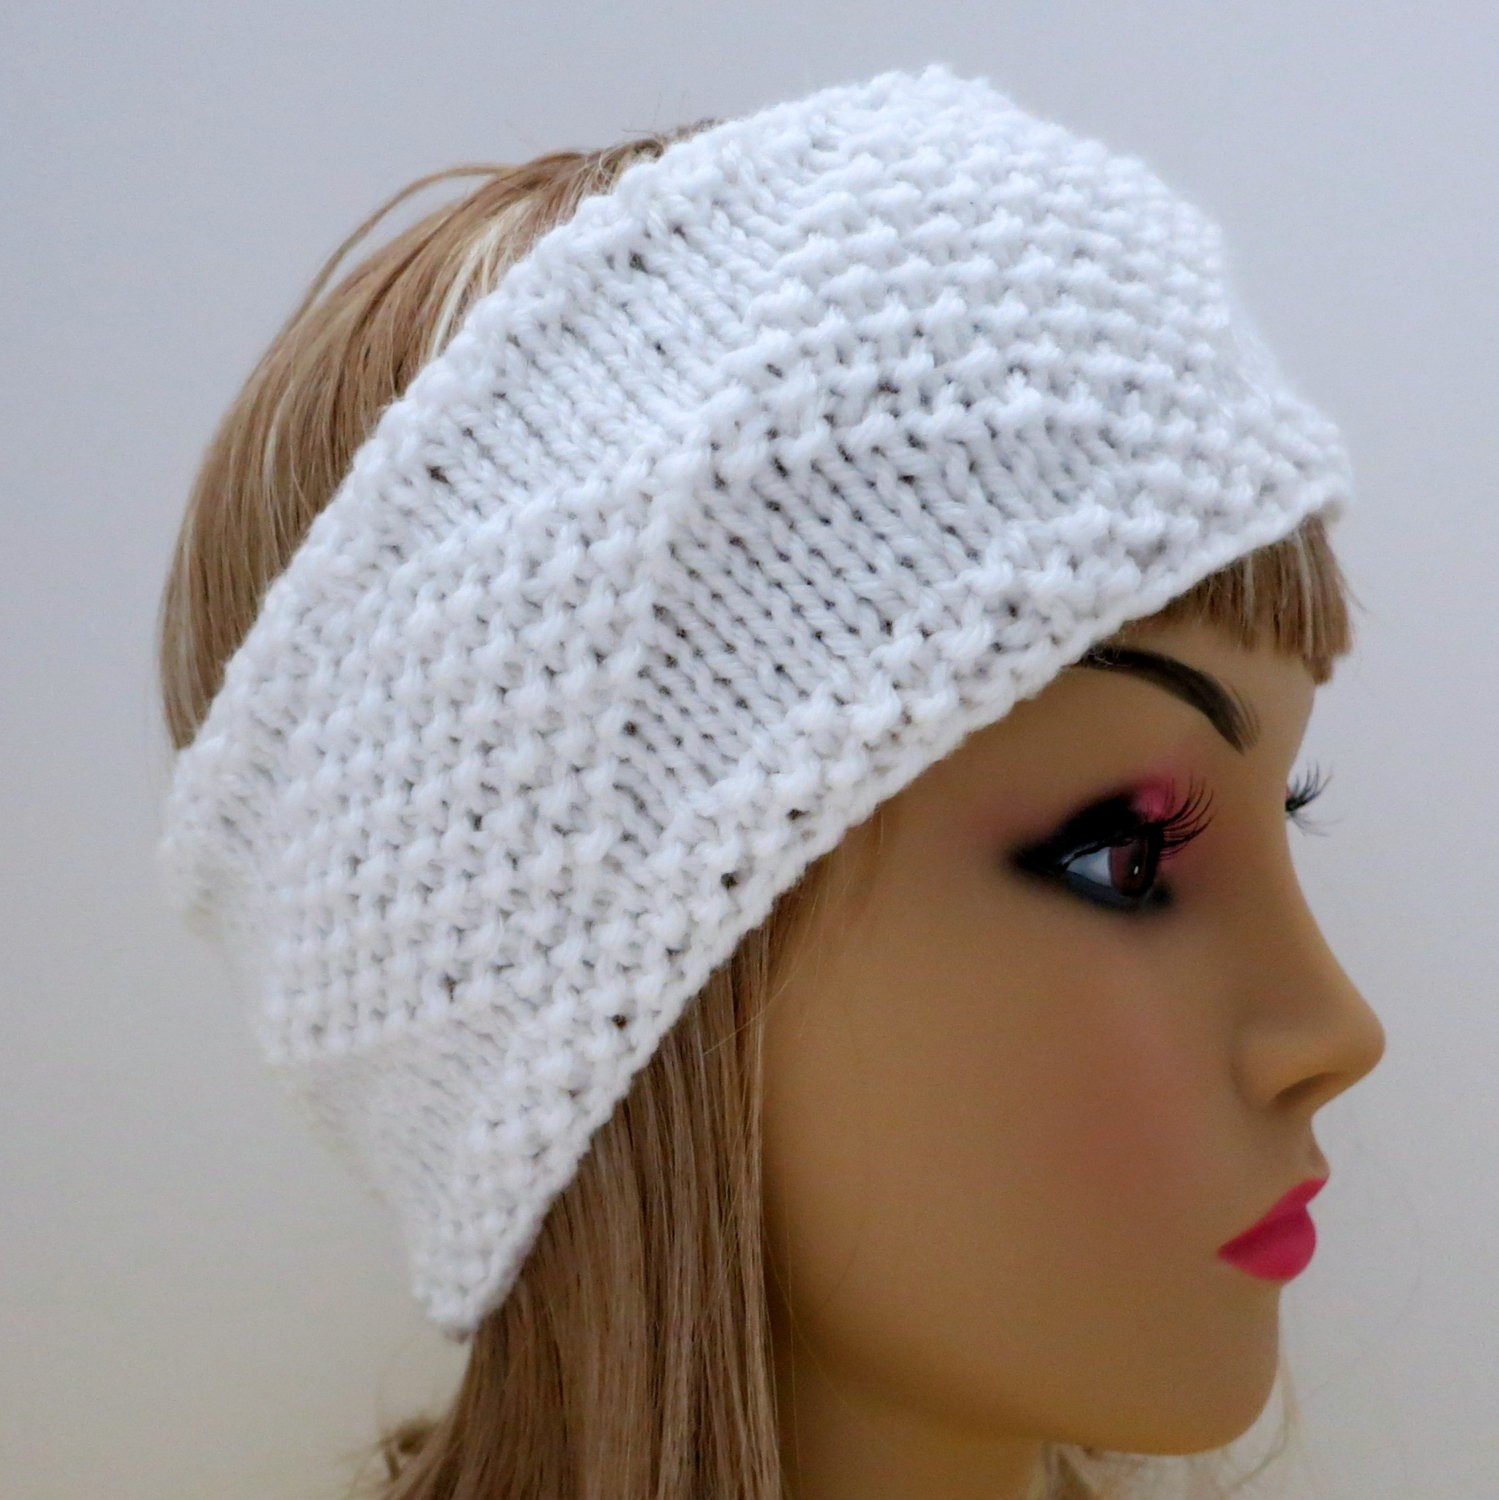 Knitted Headband Patterns Free : Knit Ear Warmer Pattern A Knitting Blog